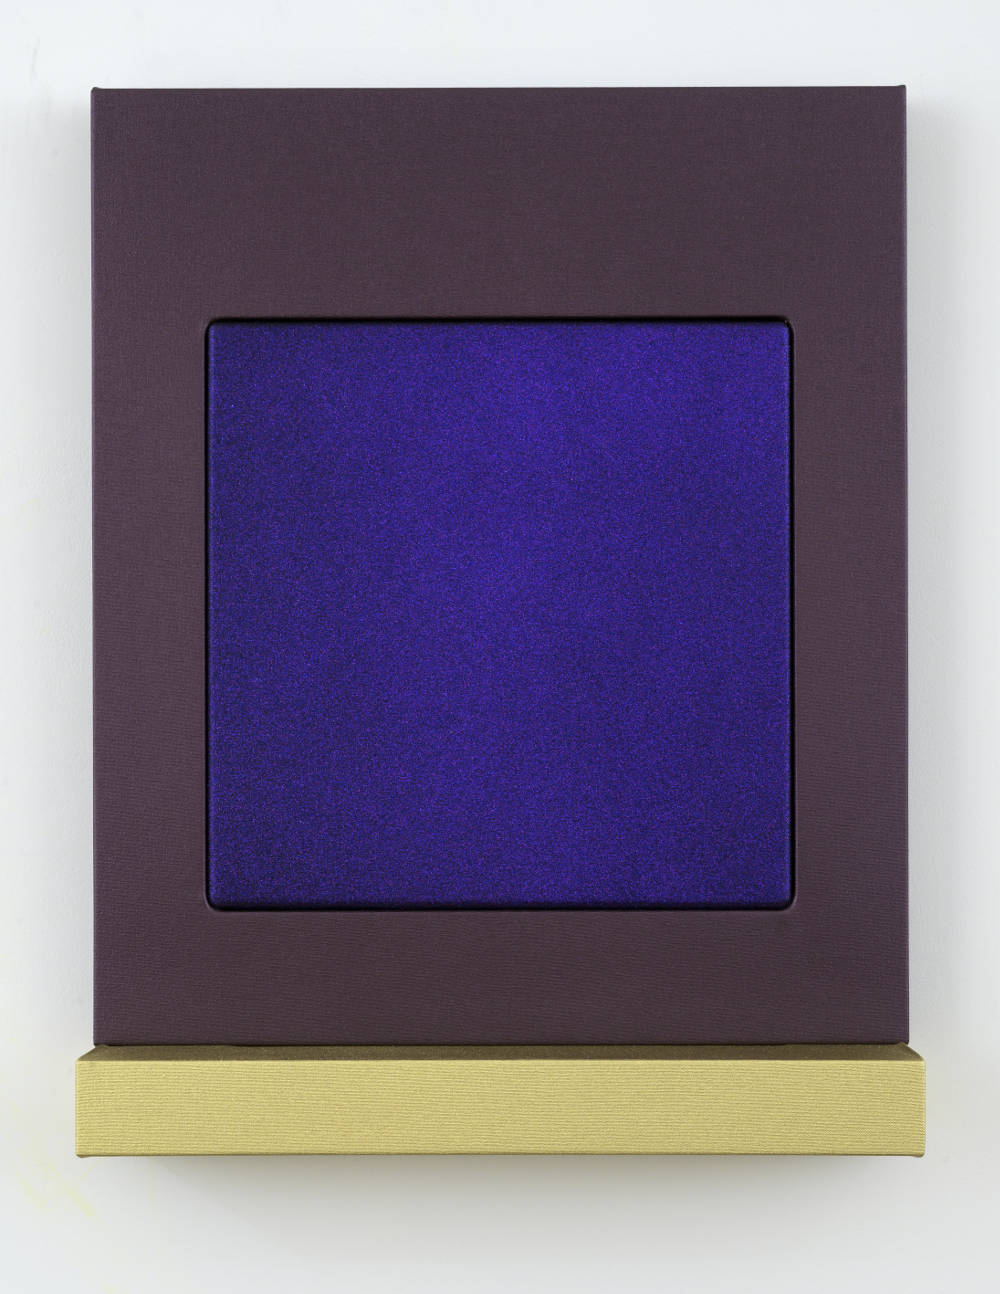 Sylvie Fleury, Private shadow - Camera Obscura, 2018. Acrylic on canvas on wood 7 kgs 72 x 56 x 14,8 cm (28,35 x 22,05 x 5,83 in) Courtesy Galerie Thaddaeus Ropac, London / Paris / Salzburg © Sylvie Fleury. Photo: Charles Duprat